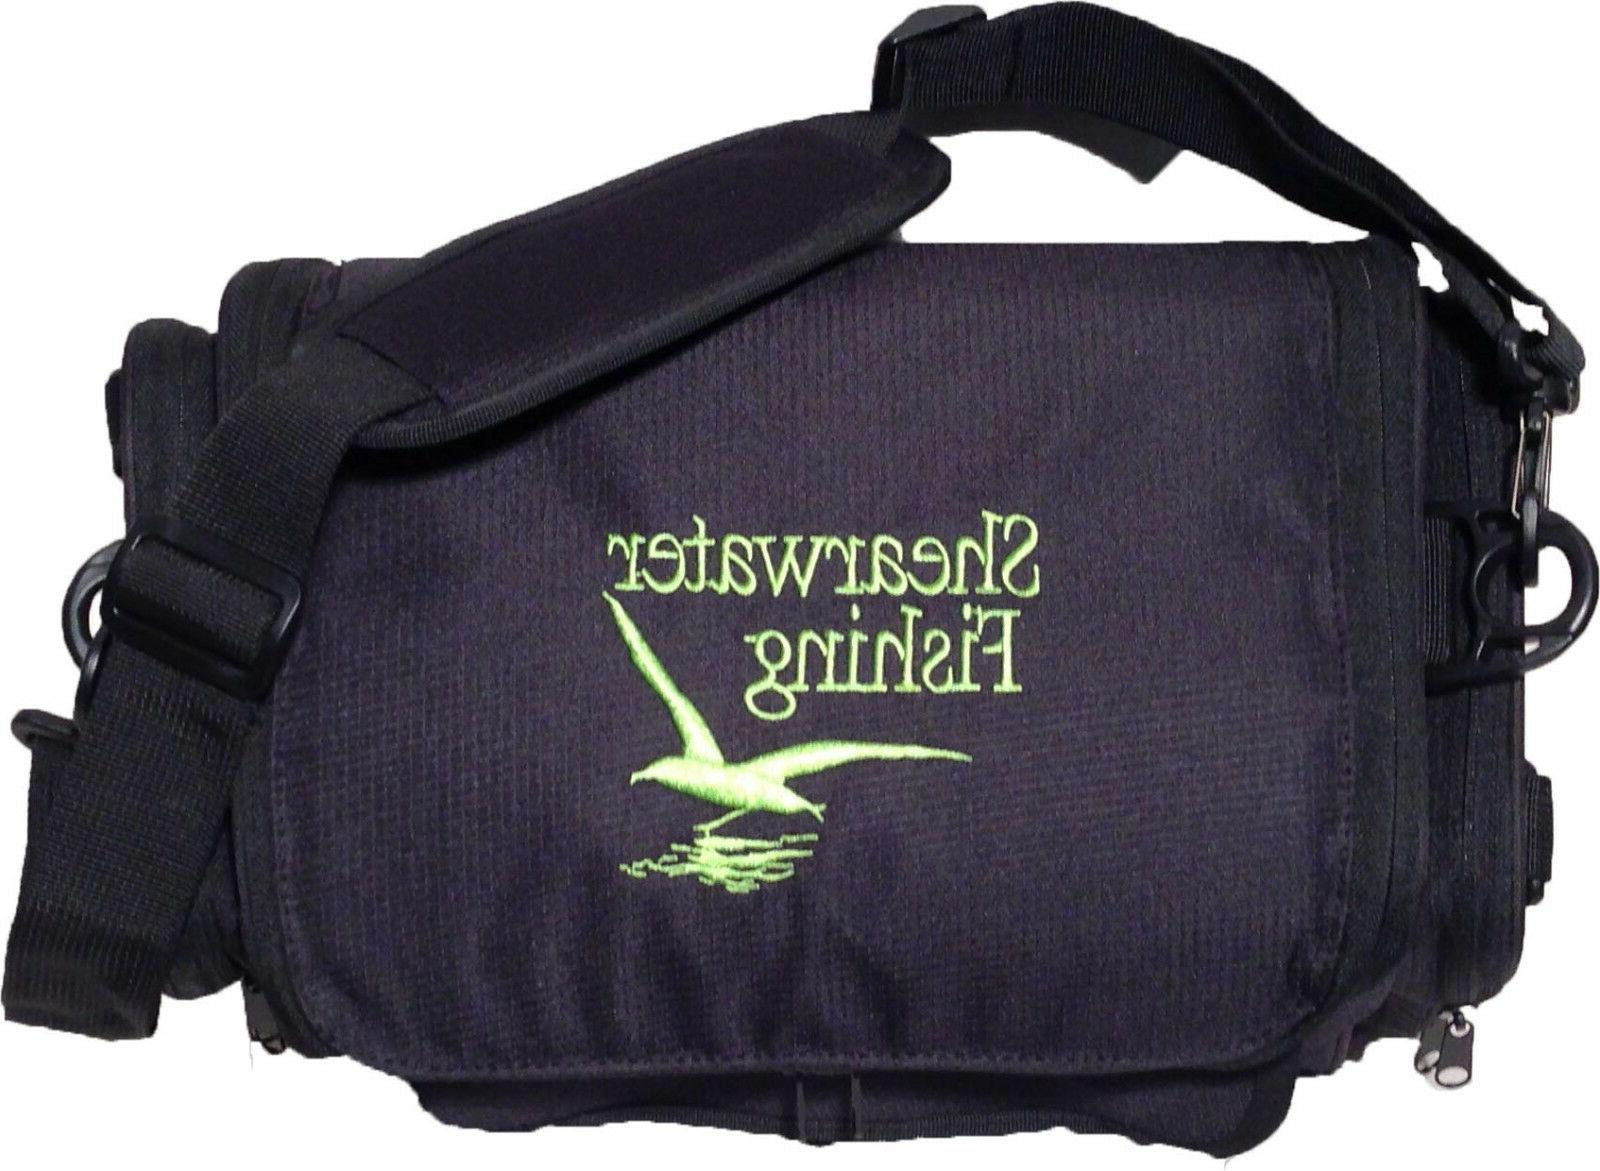 shearwater soft sided tackle bag small